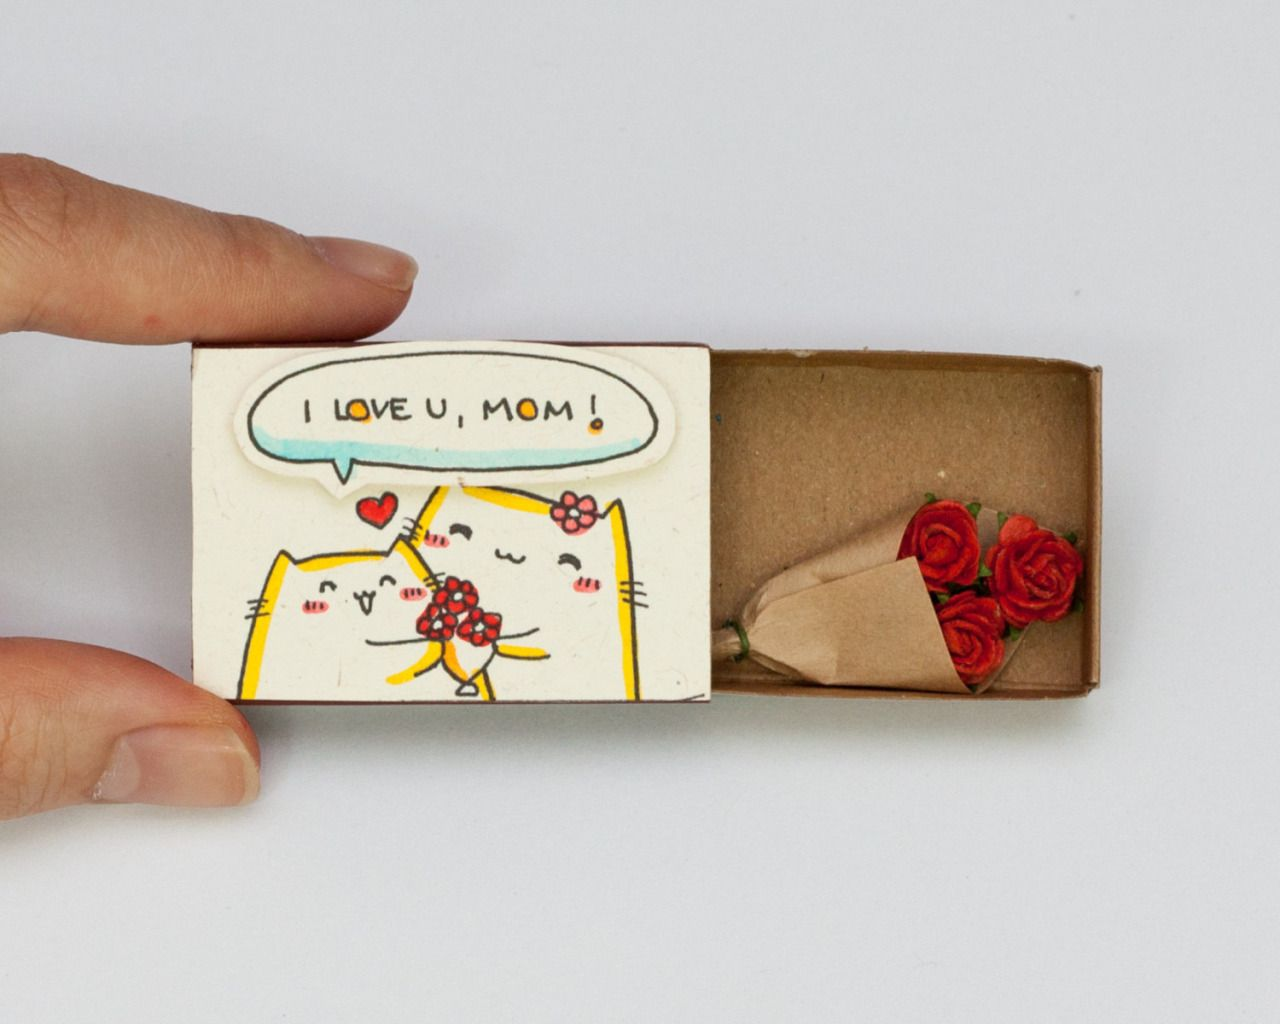 http://sosuperawesome.com/post/143650925050/matchbox-cards-by-shop3xu-on-etsy-so-super